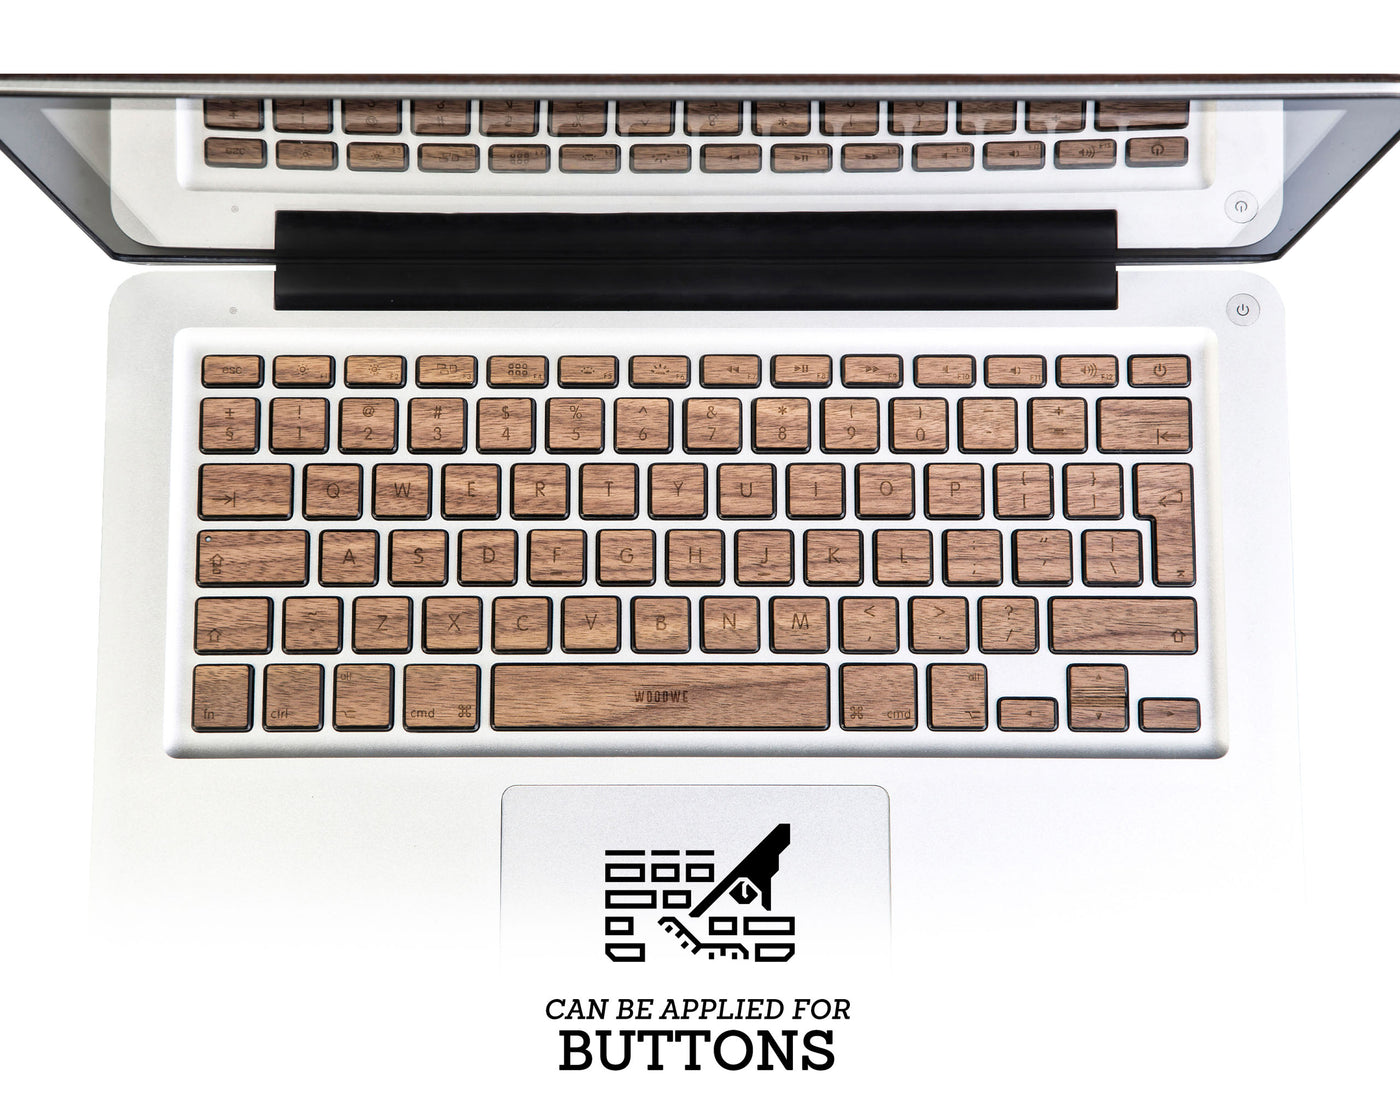 MAC & IMAC KEYBOARD SKIN COLLECTION